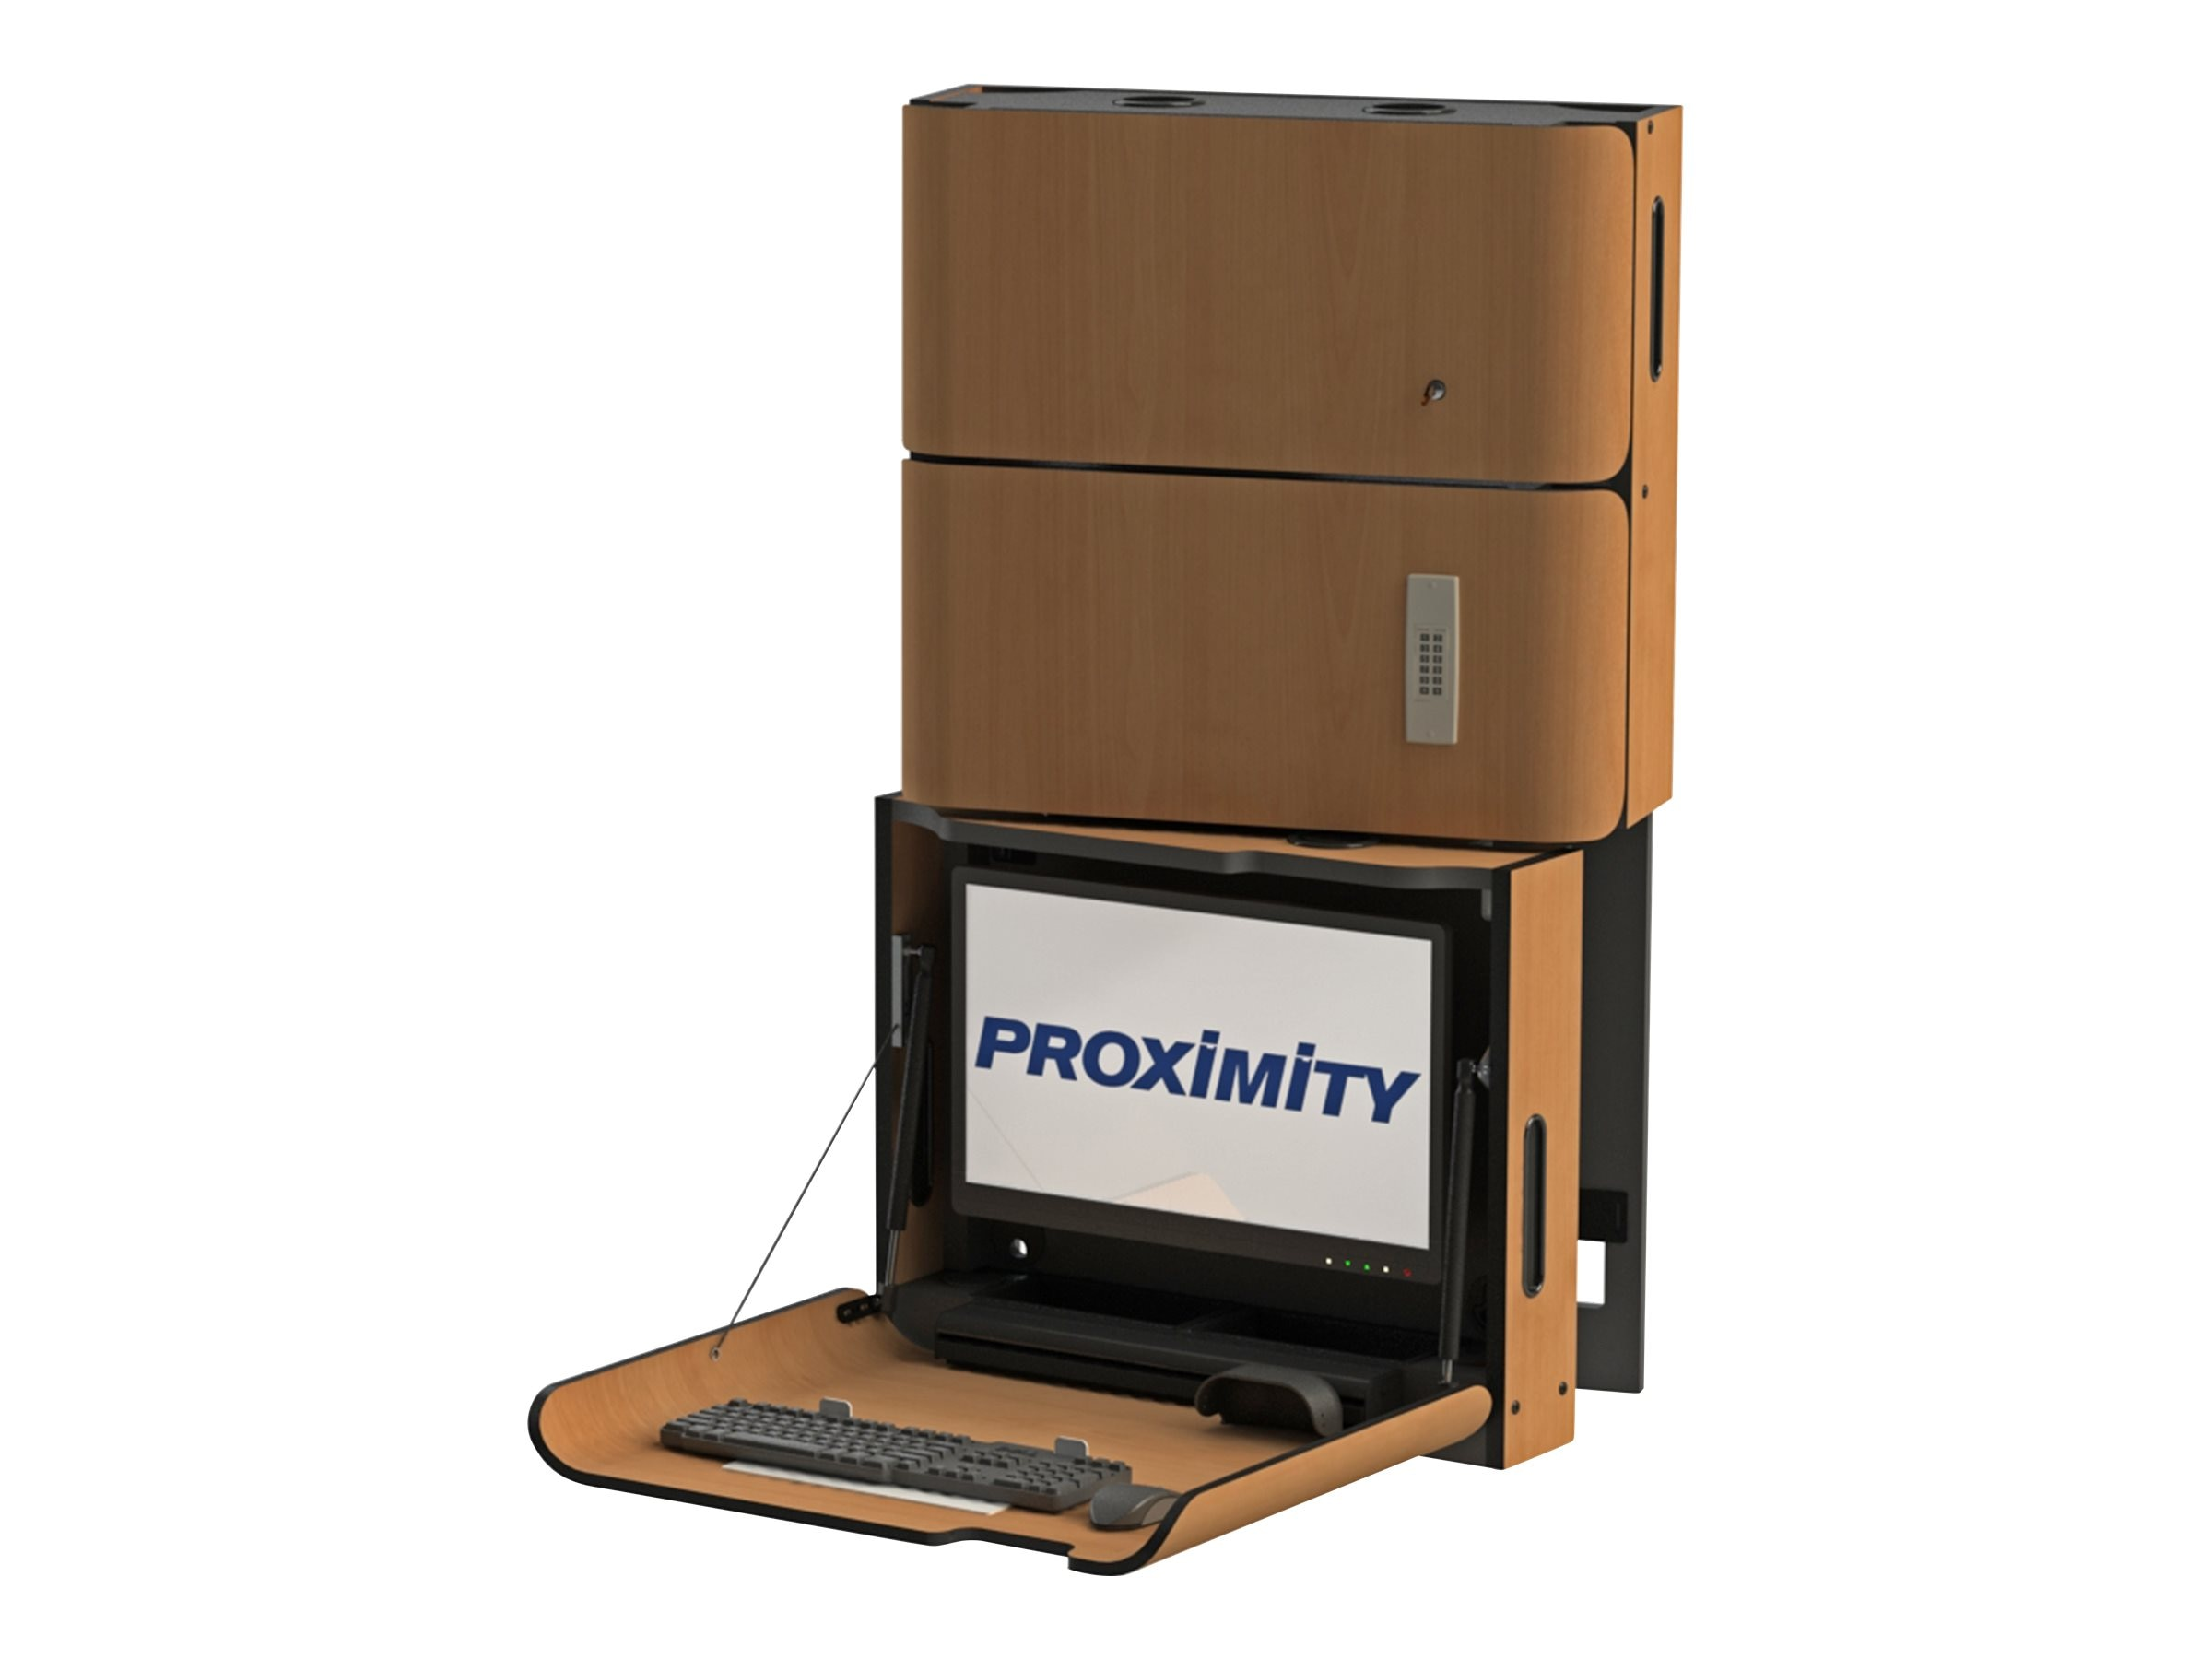 Proximity Classic Self-Disinfecting Wall Station with Monitor Tilt, Left Swivel, Med Storage, Font Hill Pear